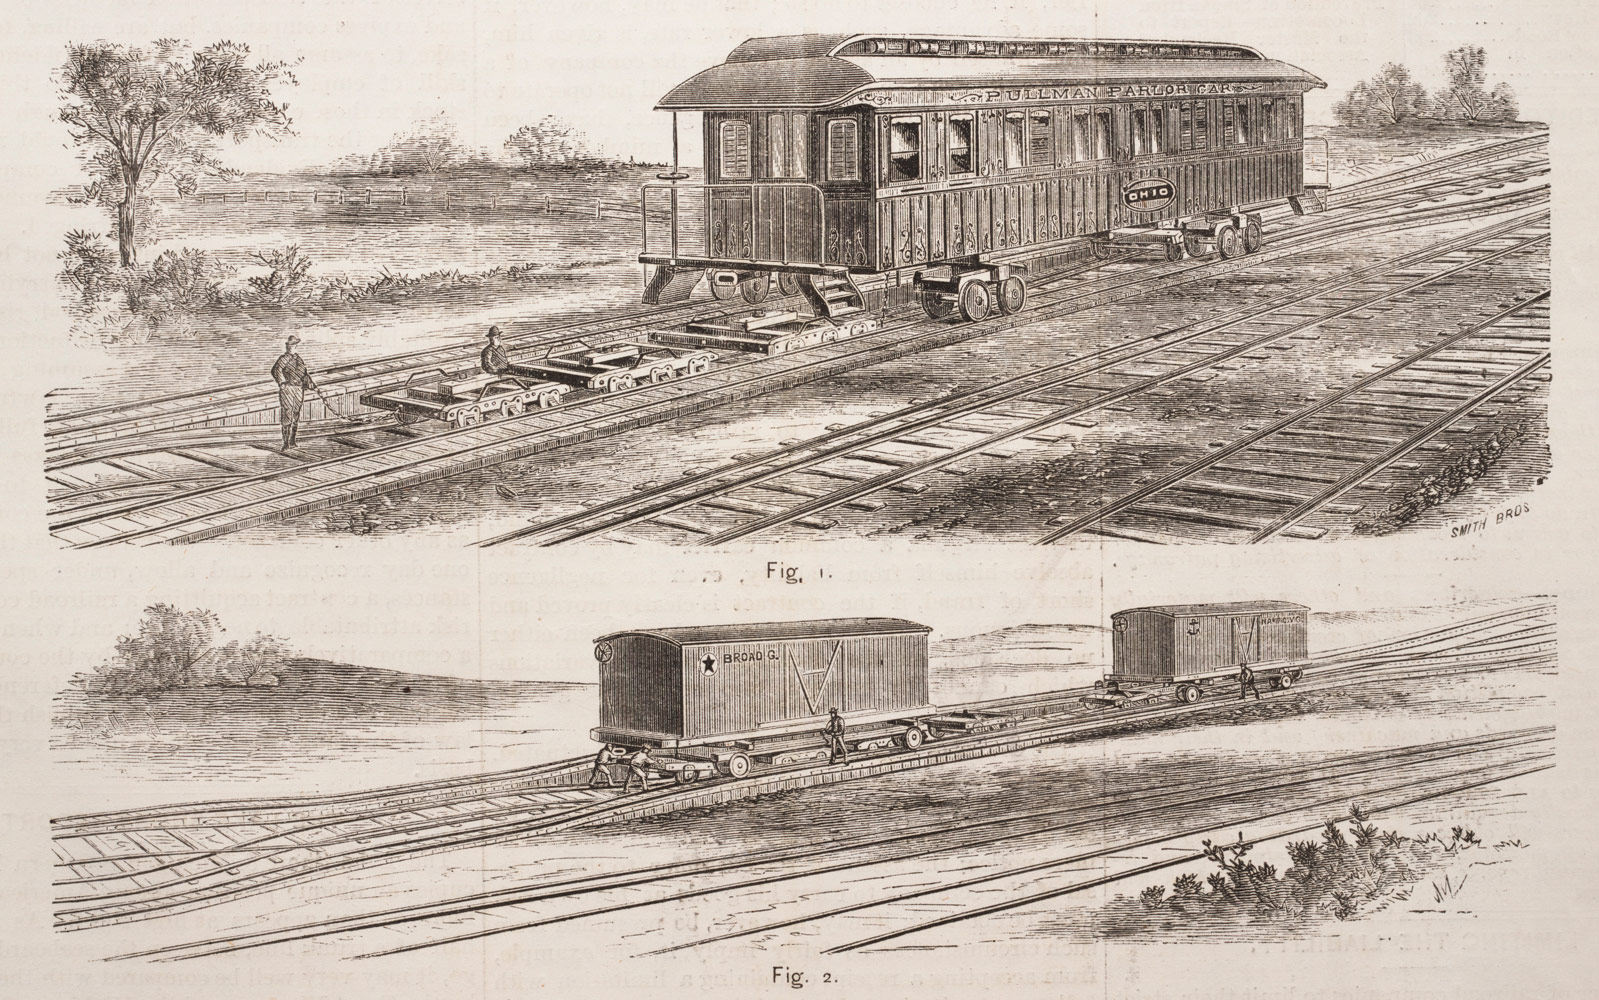 transcontinental railroad thesis paper Post civil war research papers transcontinental railroad was completed, linking east and west the frontier was breached leading to the cattle kingdom the various mining booms began that characterized the wild west.